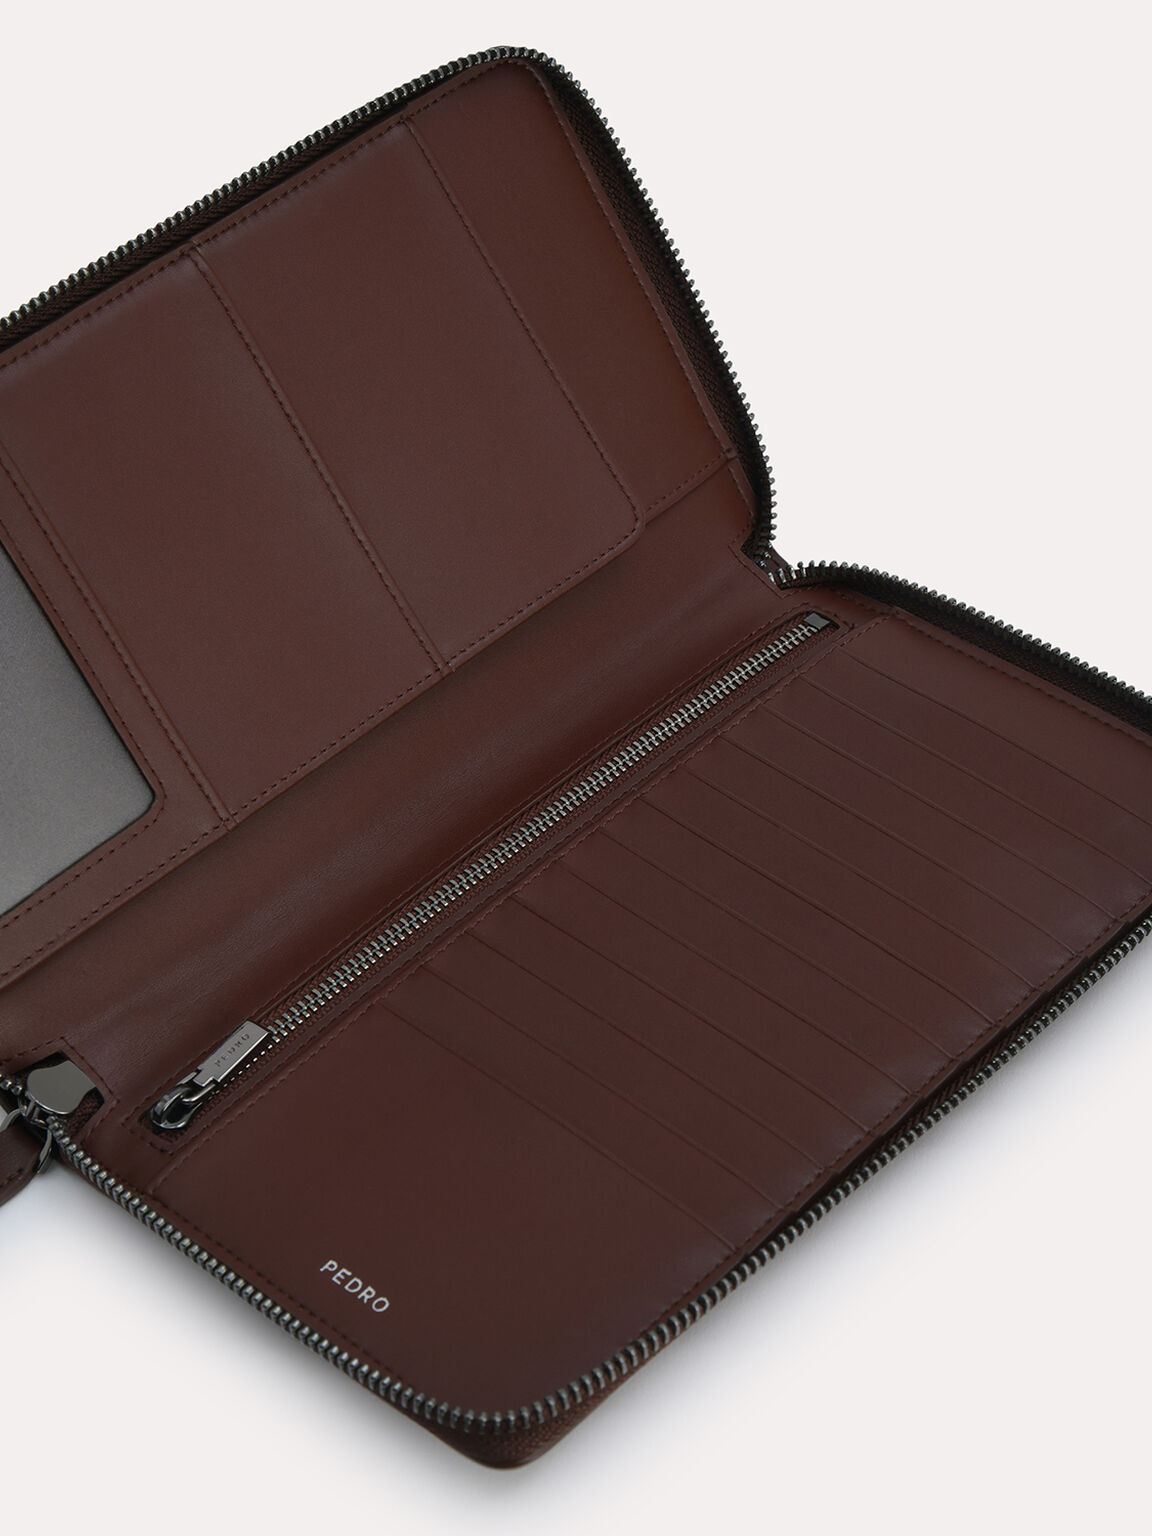 Quilted Leather Travel Organiser, Dark Brown, hi-res